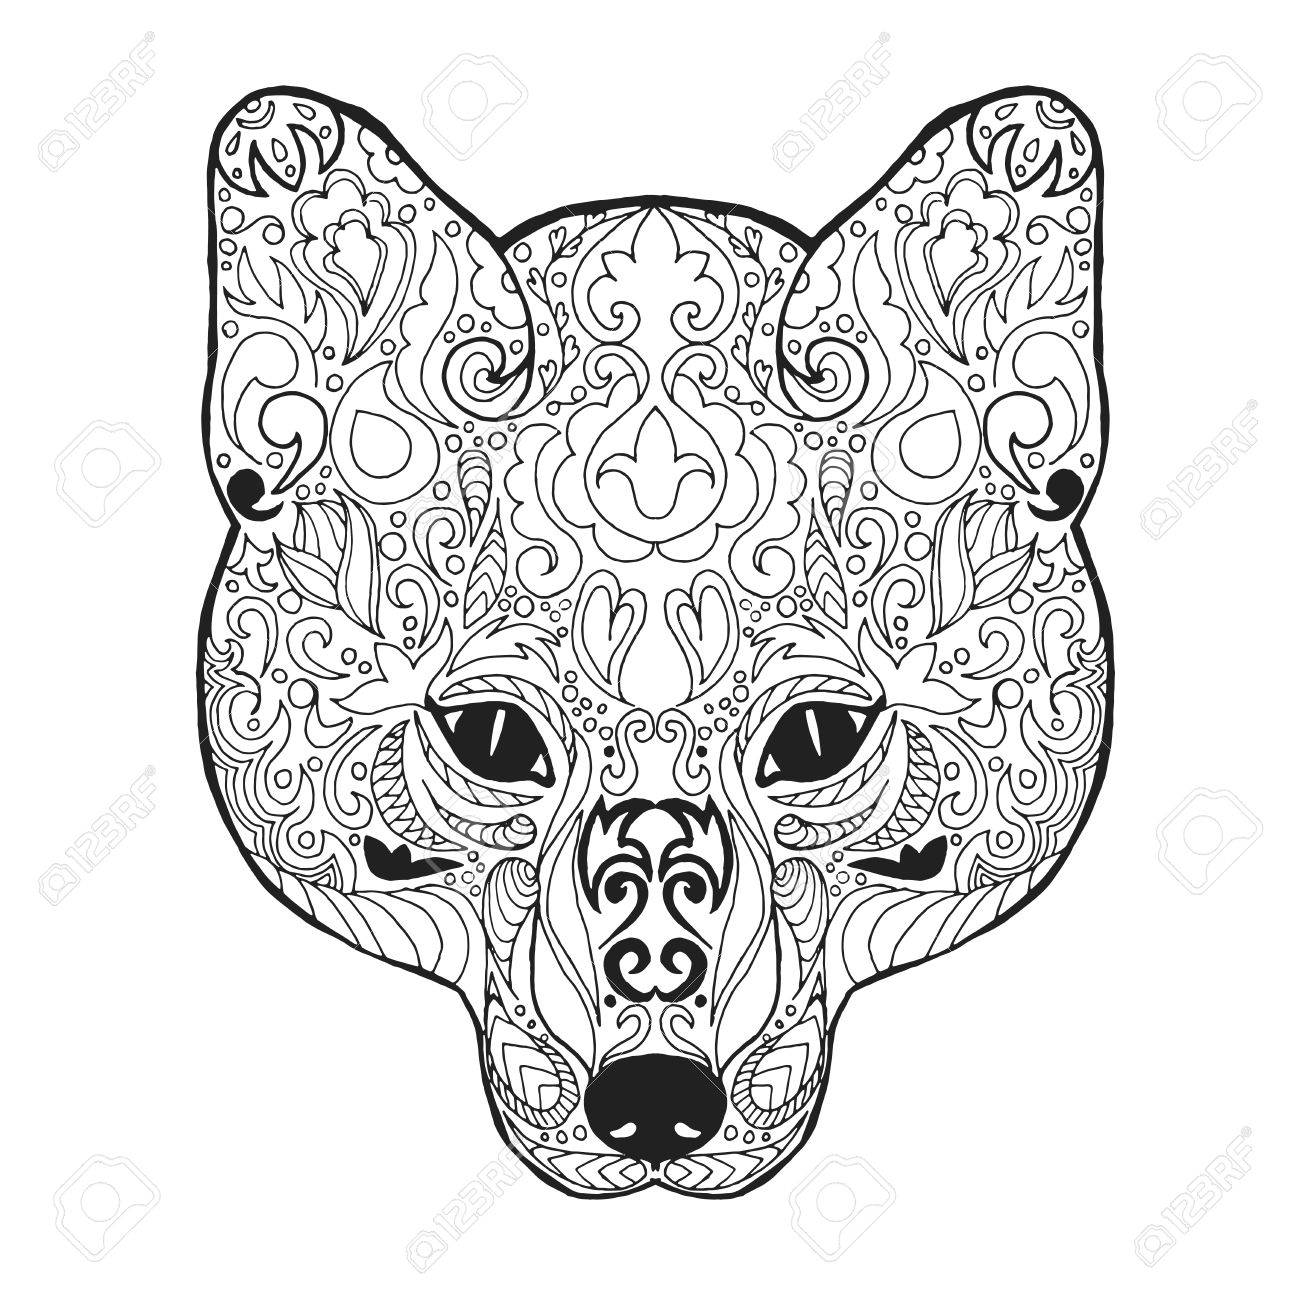 1300x1300 Fox Head. Adult Antistress Coloring Page. Black White Hand Drawn